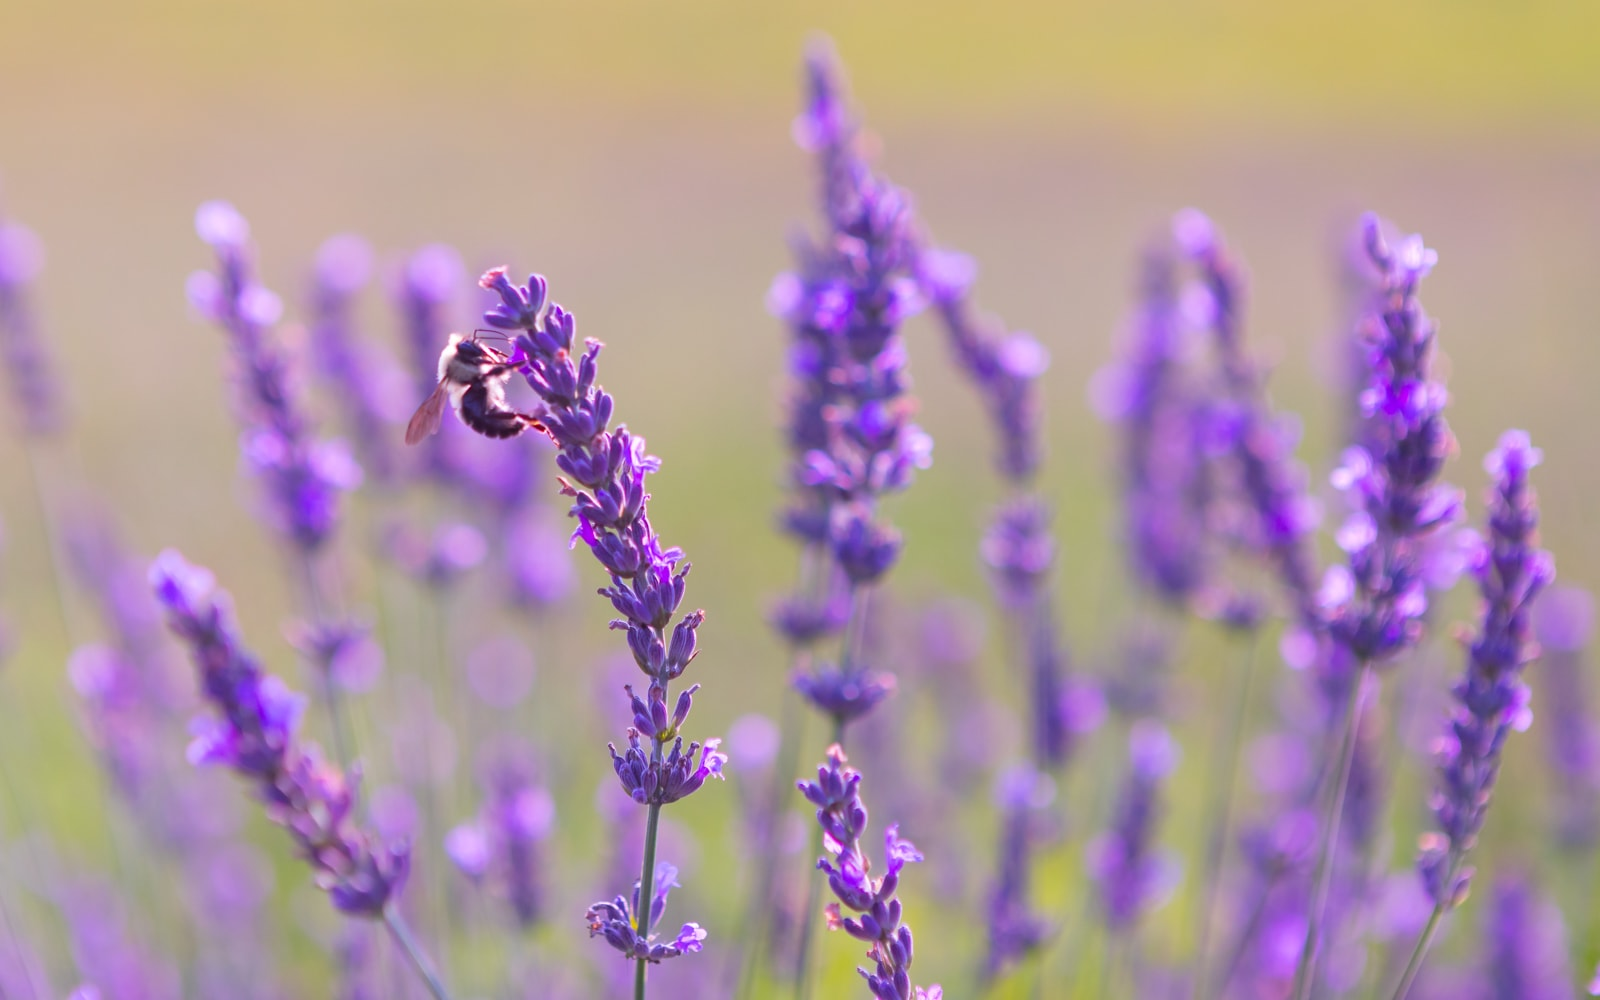 Honey bee pollinating a lavender flower